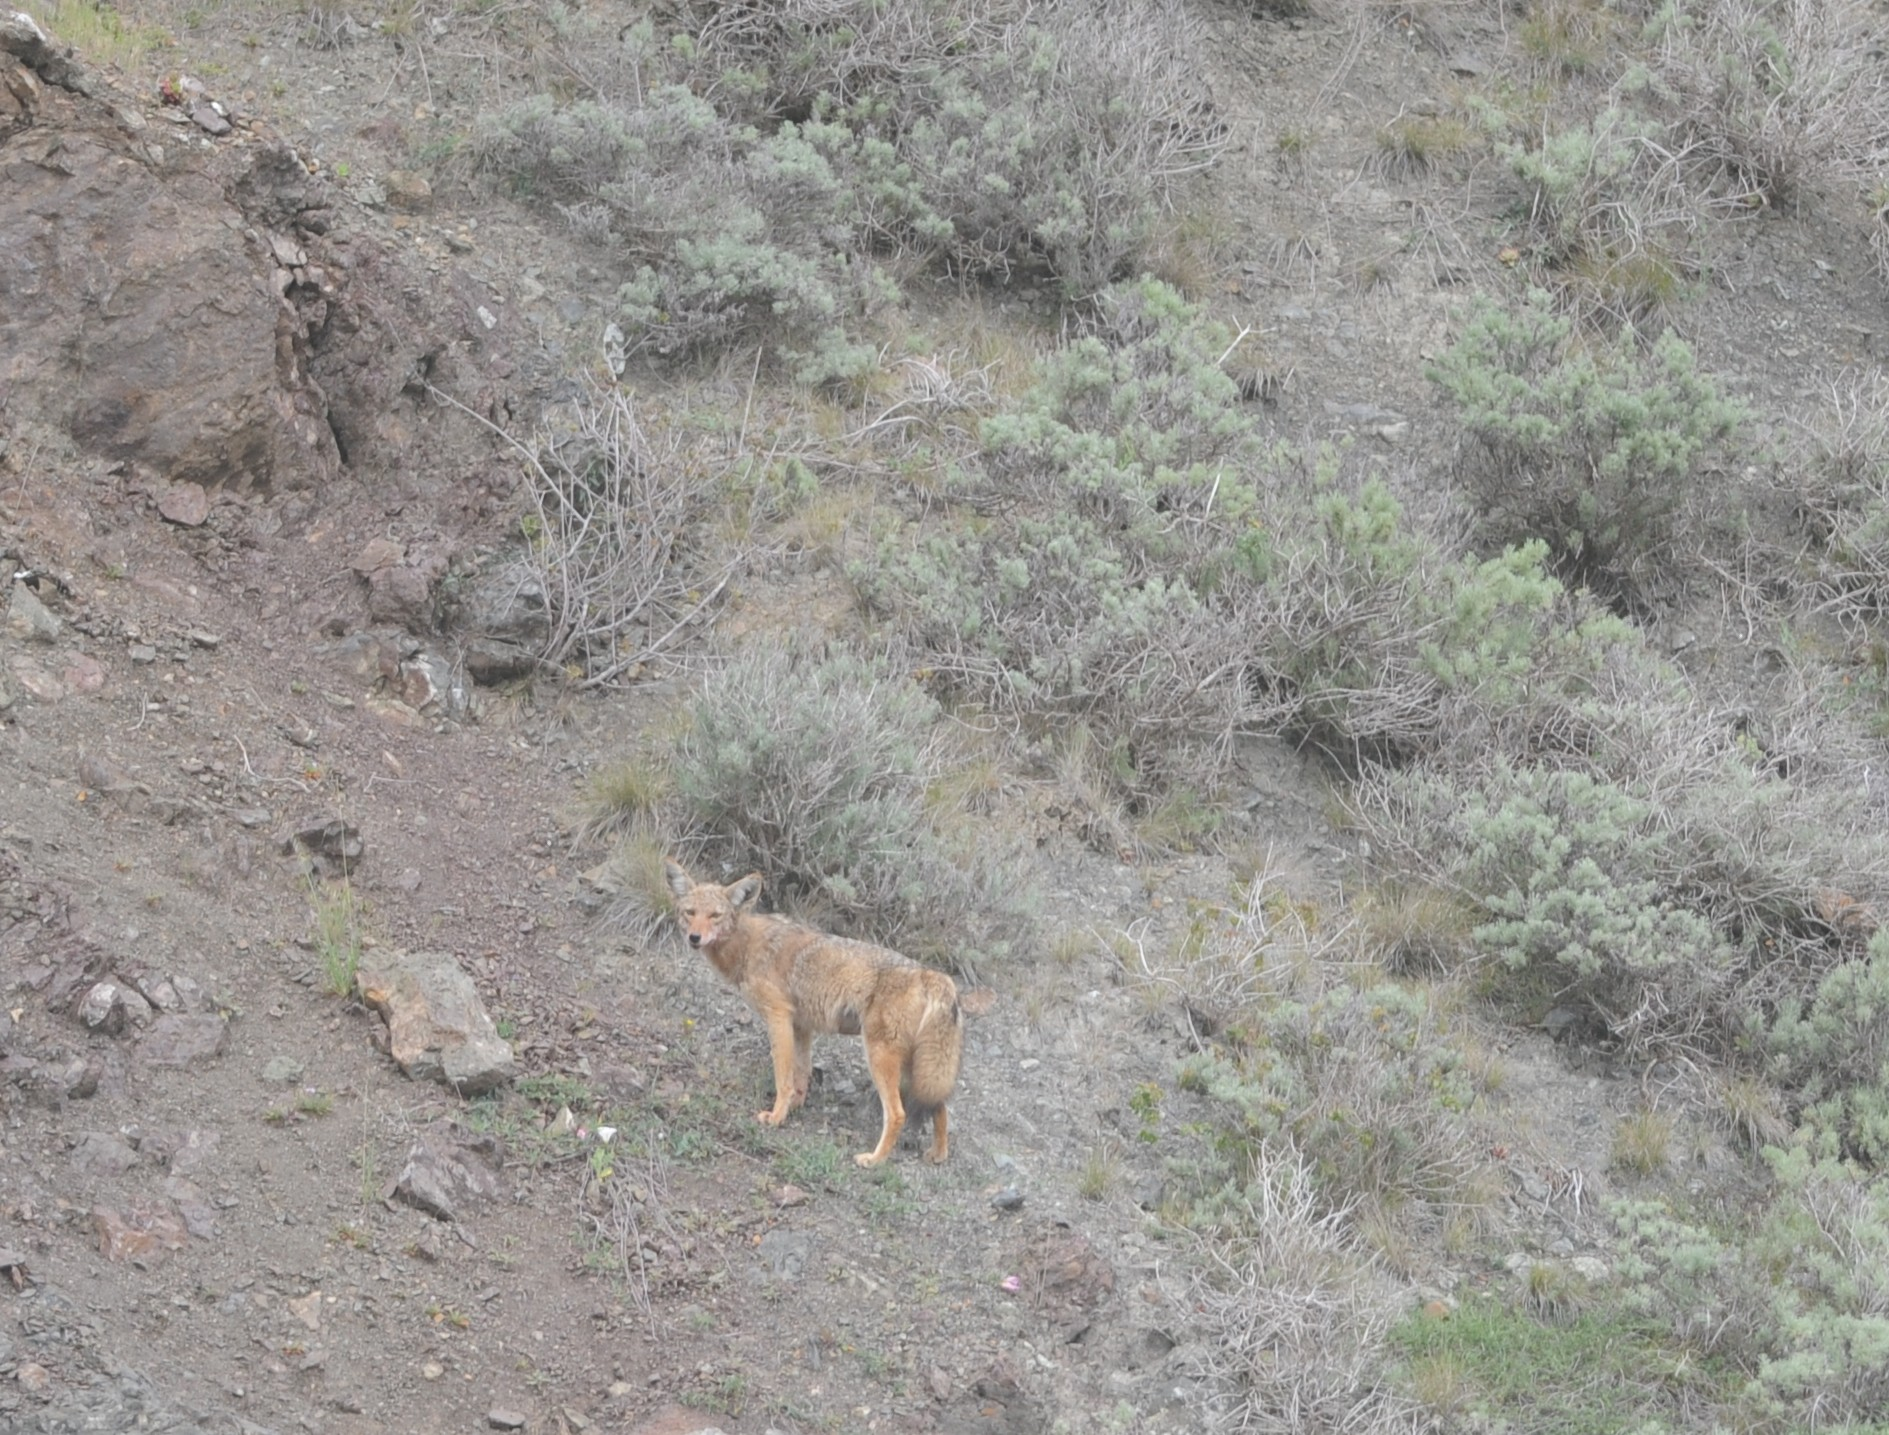 Coyote on the hills above the harbor seals.